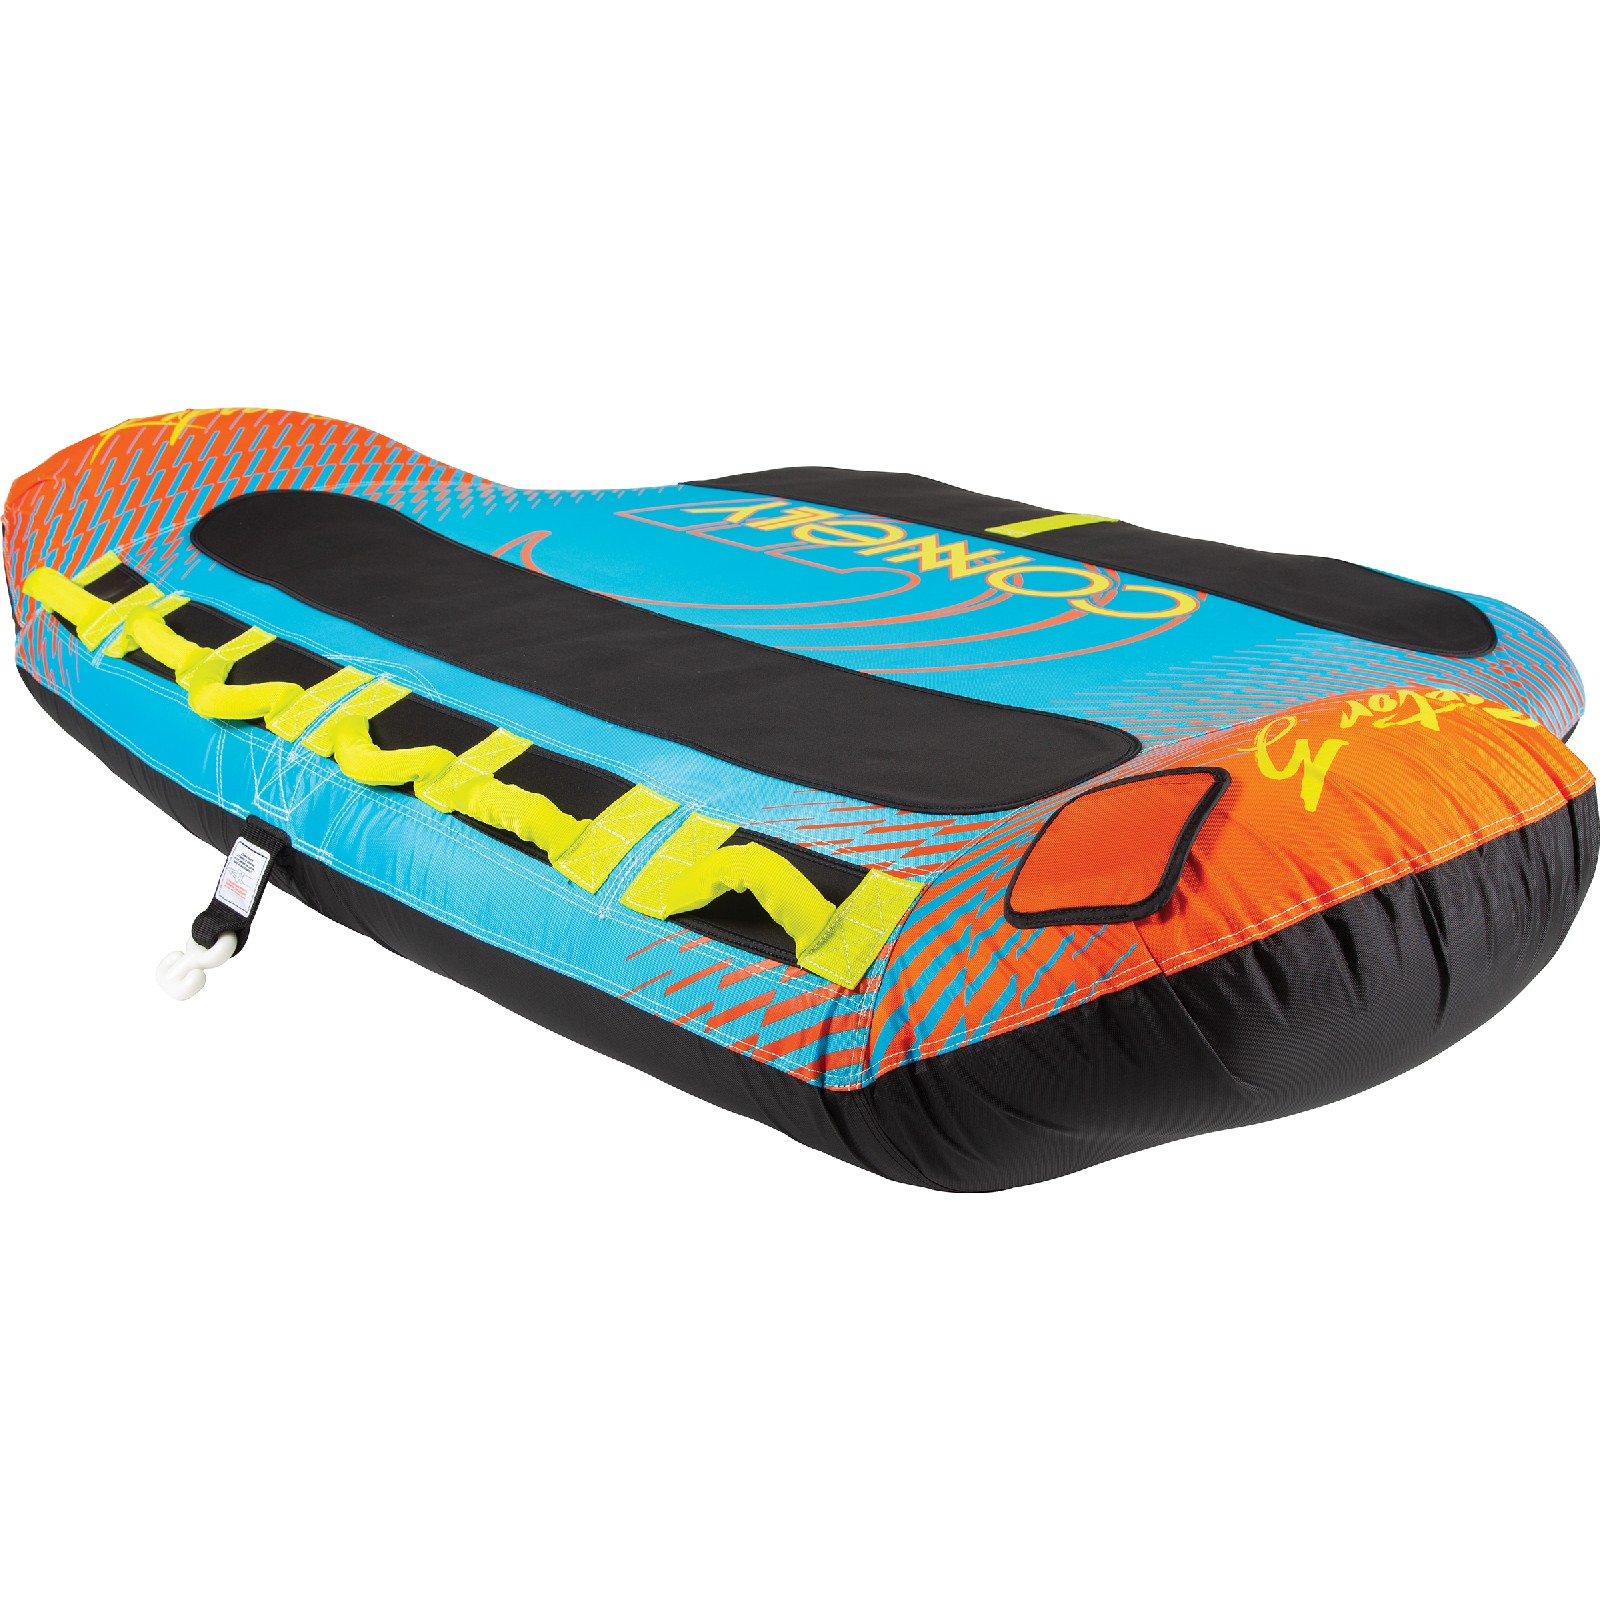 RAPTOR 3 TOWABLE TUBE CONNELLY 2019